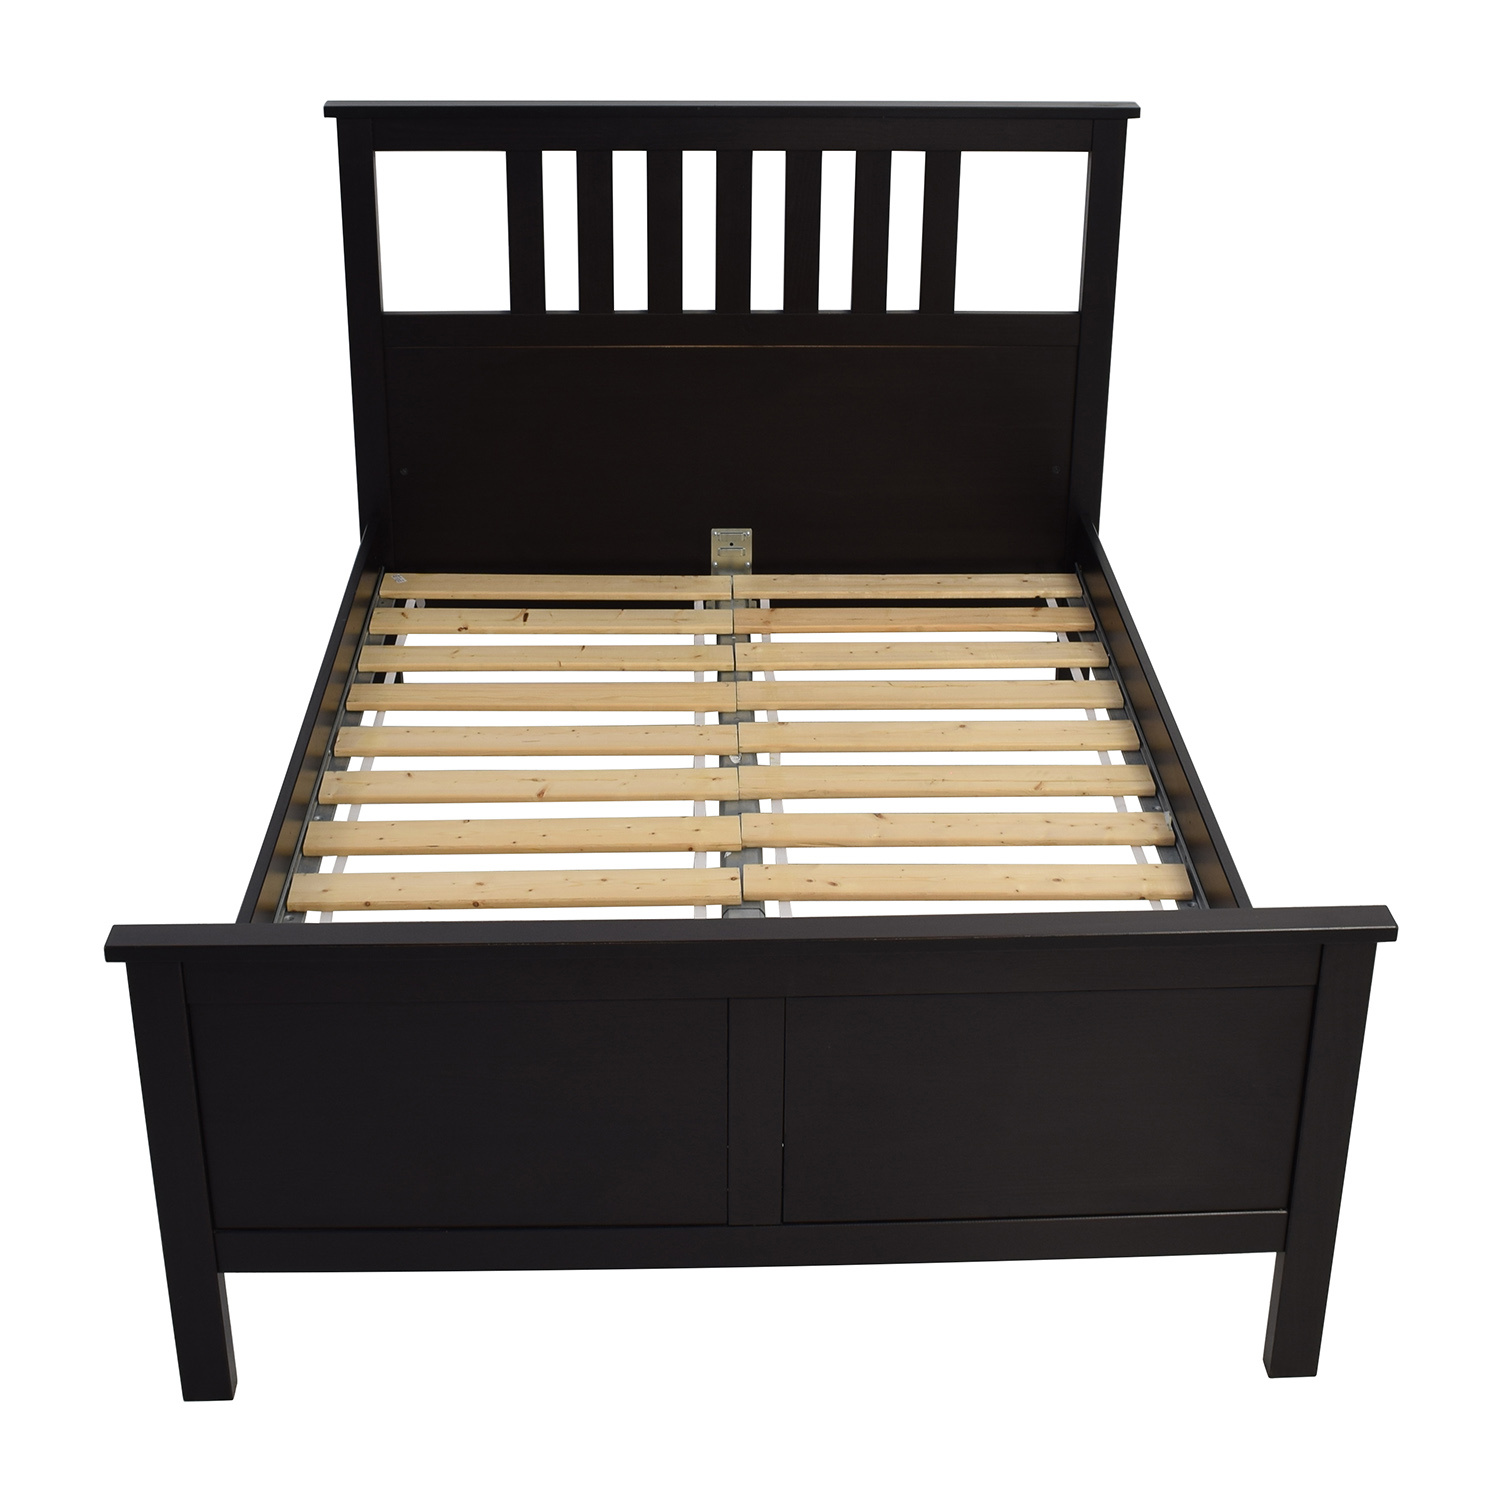 shop ikea dark brown wood queen bed frame ikea bed frames - Ikea Queen Bed Frames